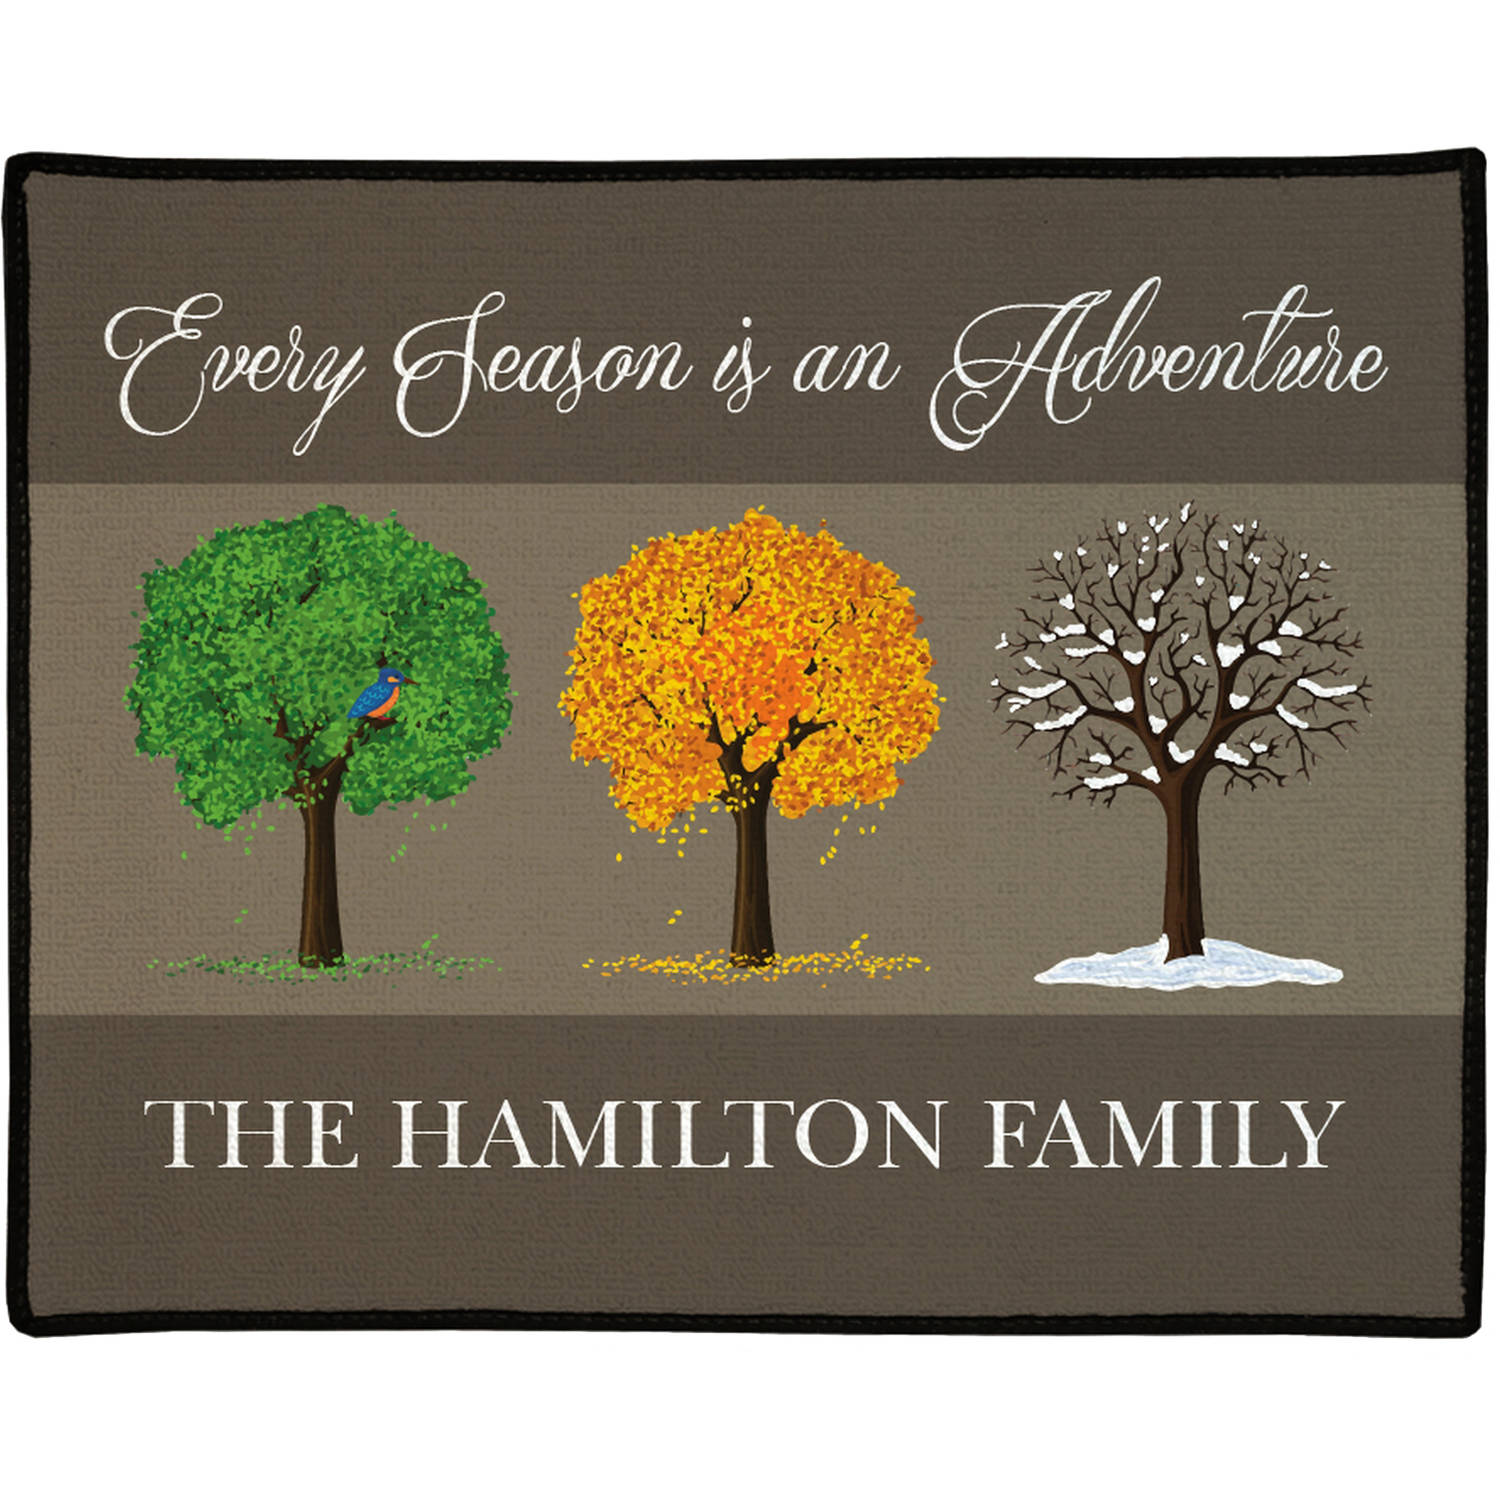 "Every Season is an Adventure Personalized Doormat, 19.5"" x 15.5"""